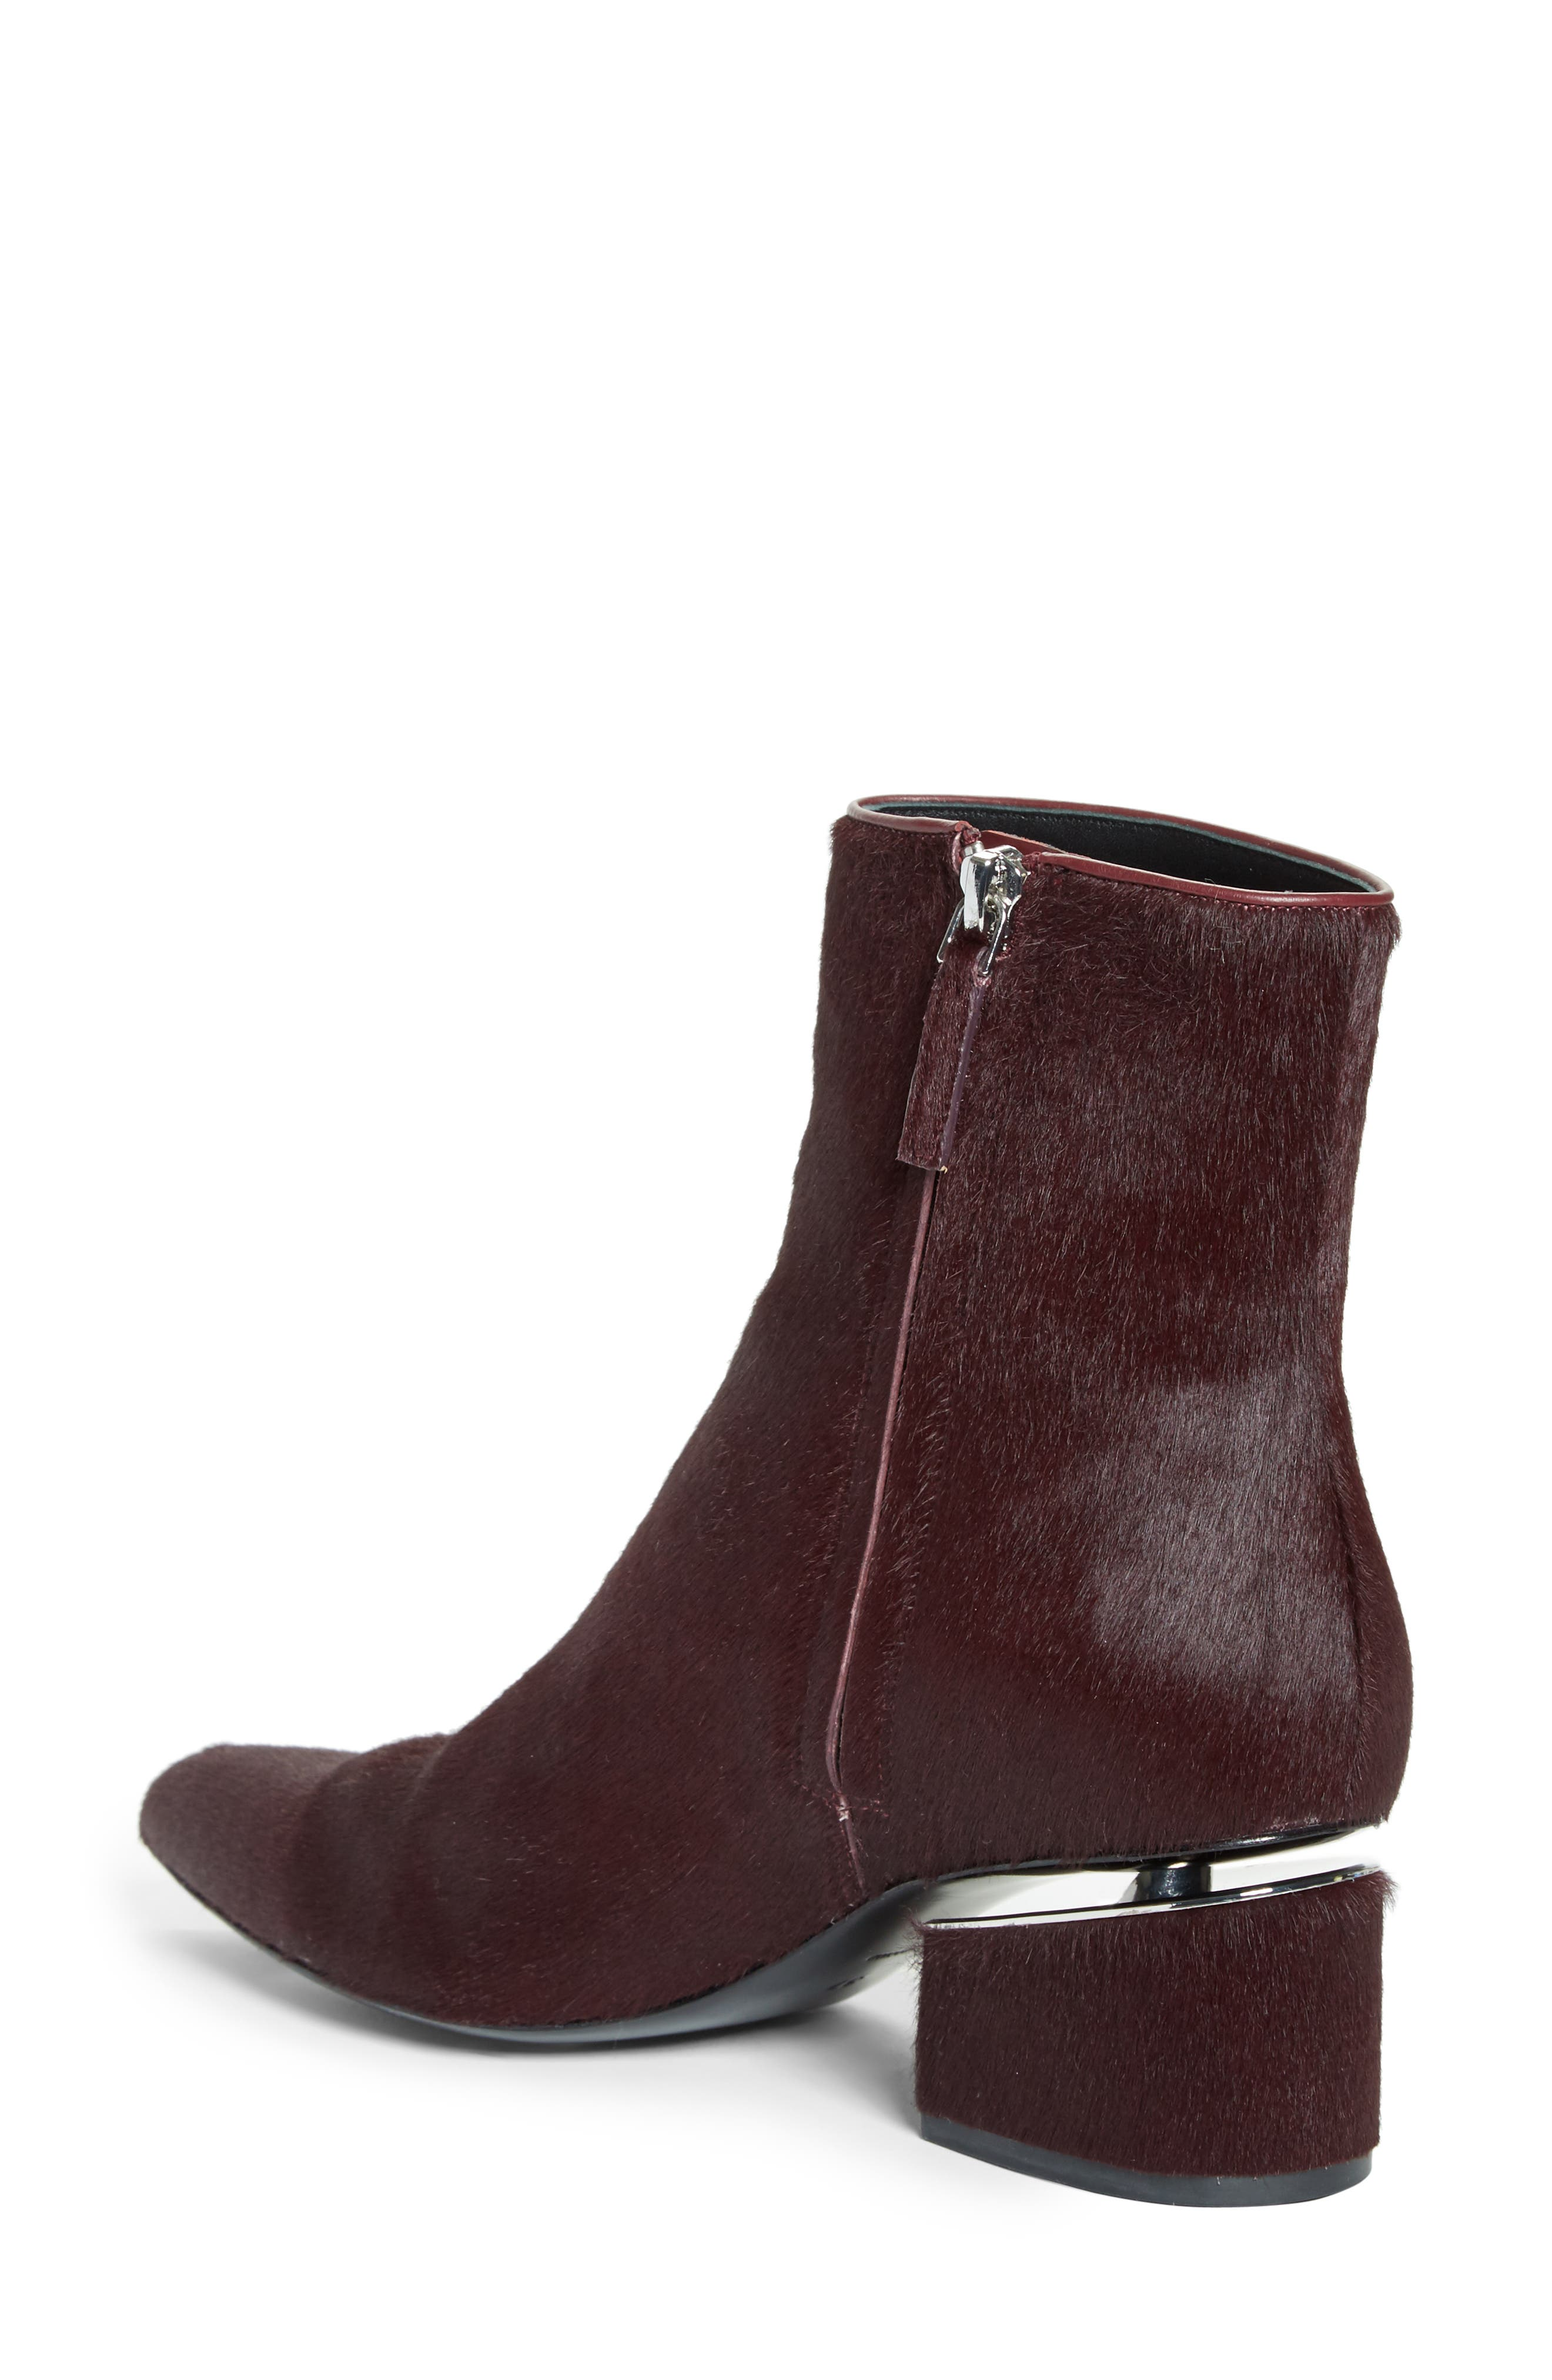 Jude Genuine Calf Hair Bootie,                             Alternate thumbnail 2, color,                             Burgundy Leather